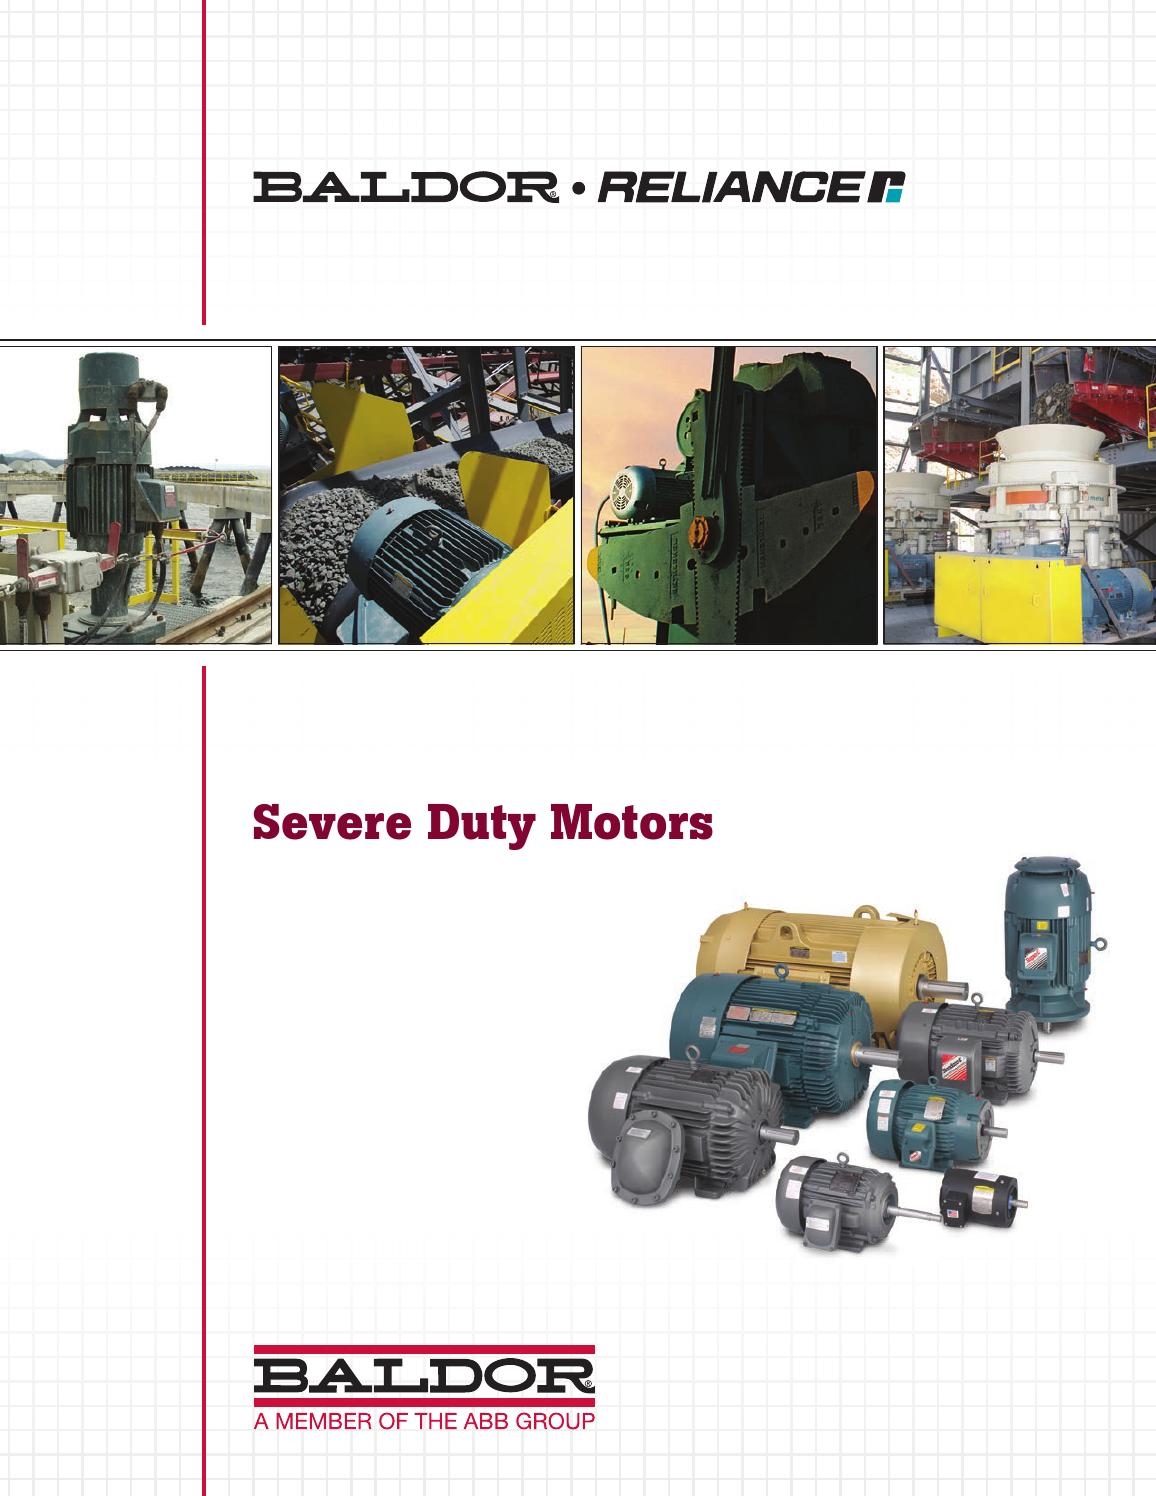 Baldor Severe Duty Motors By Tencarva Machinery Company Issuu High Efficiency Wiring Diagram